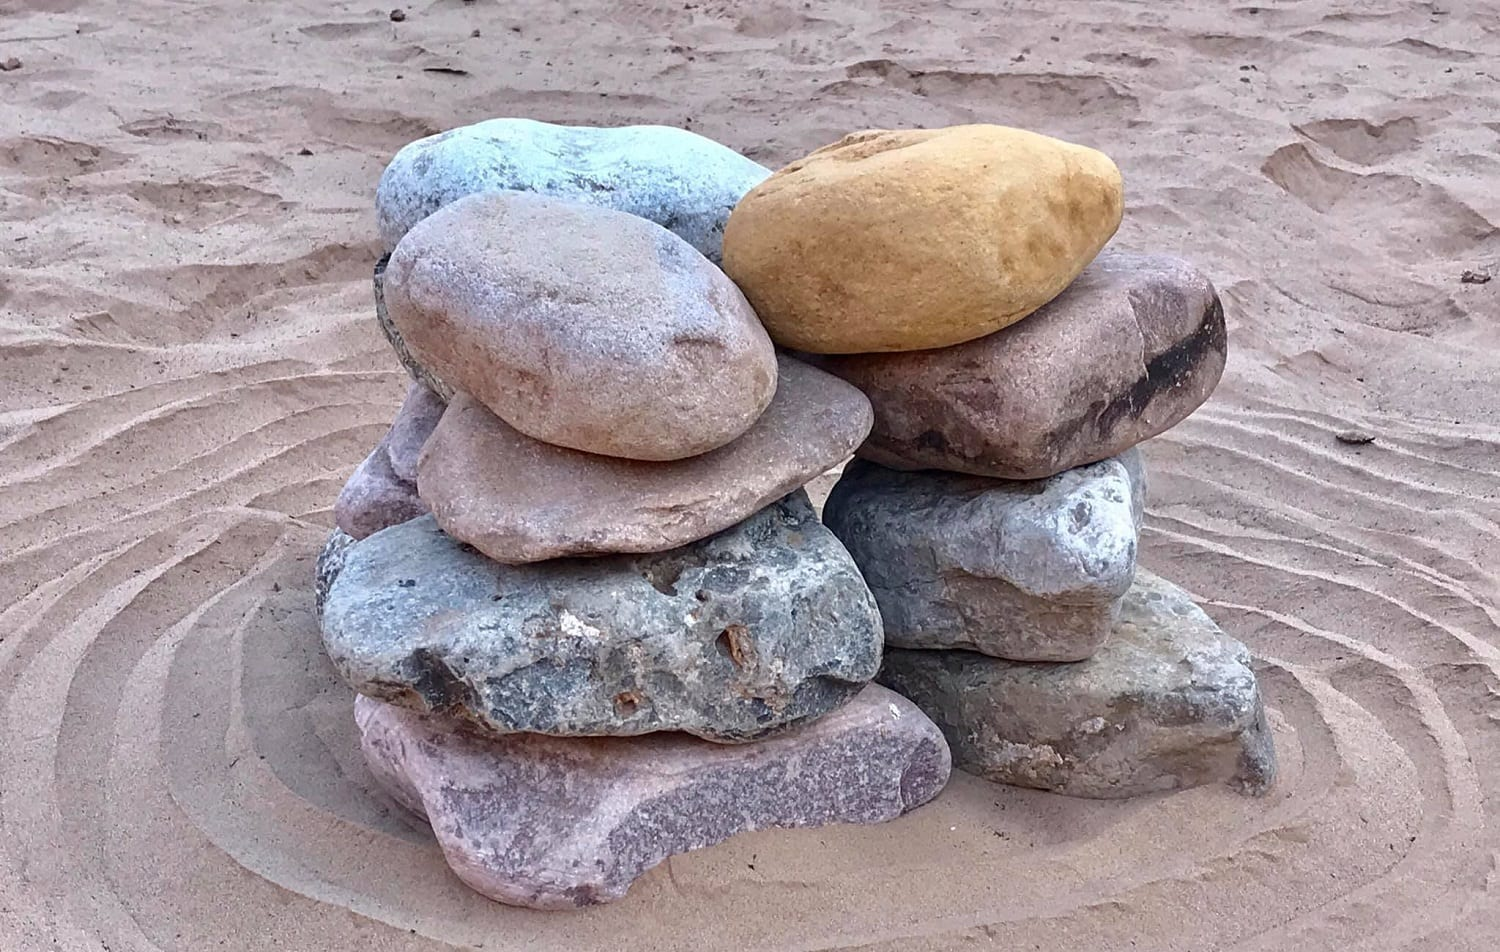 12 Stones in a pile, Canyon Ministries